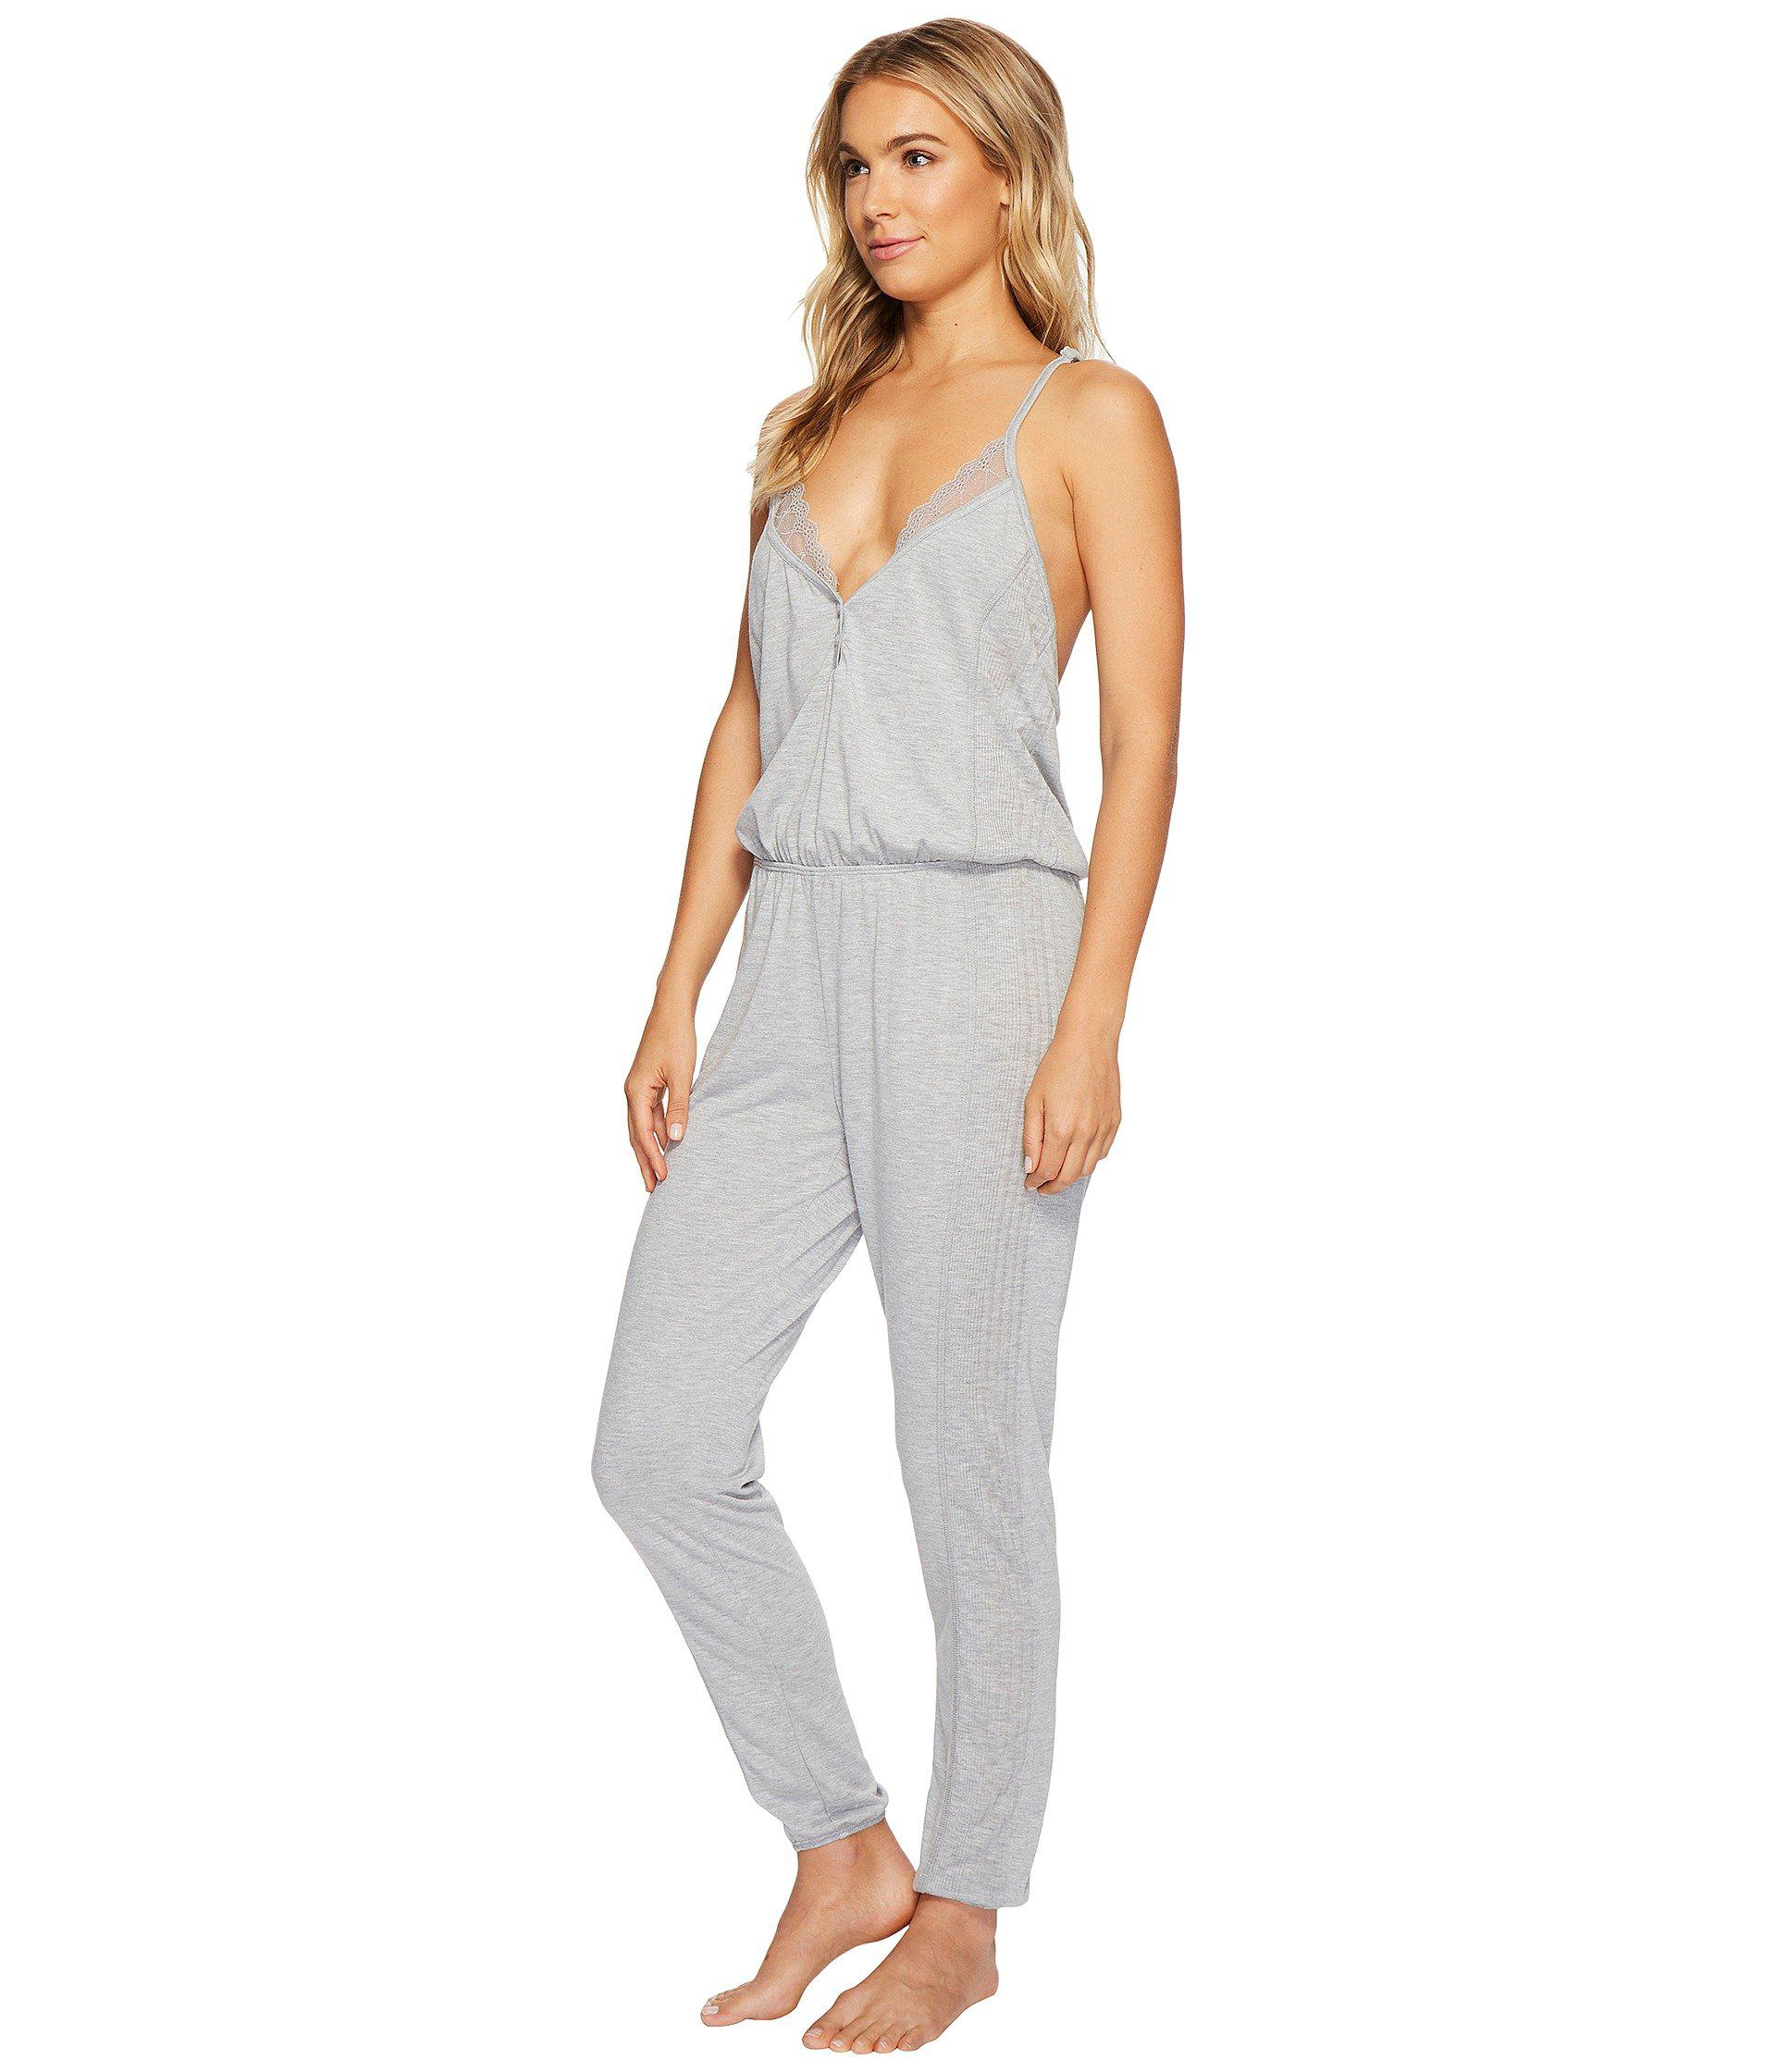 b31ac819b628 Lyst - Splendid Always Long Lace Back Pajama Romper (black) Women s Jumpsuit    Rompers One Piece in Gray - Save 13%